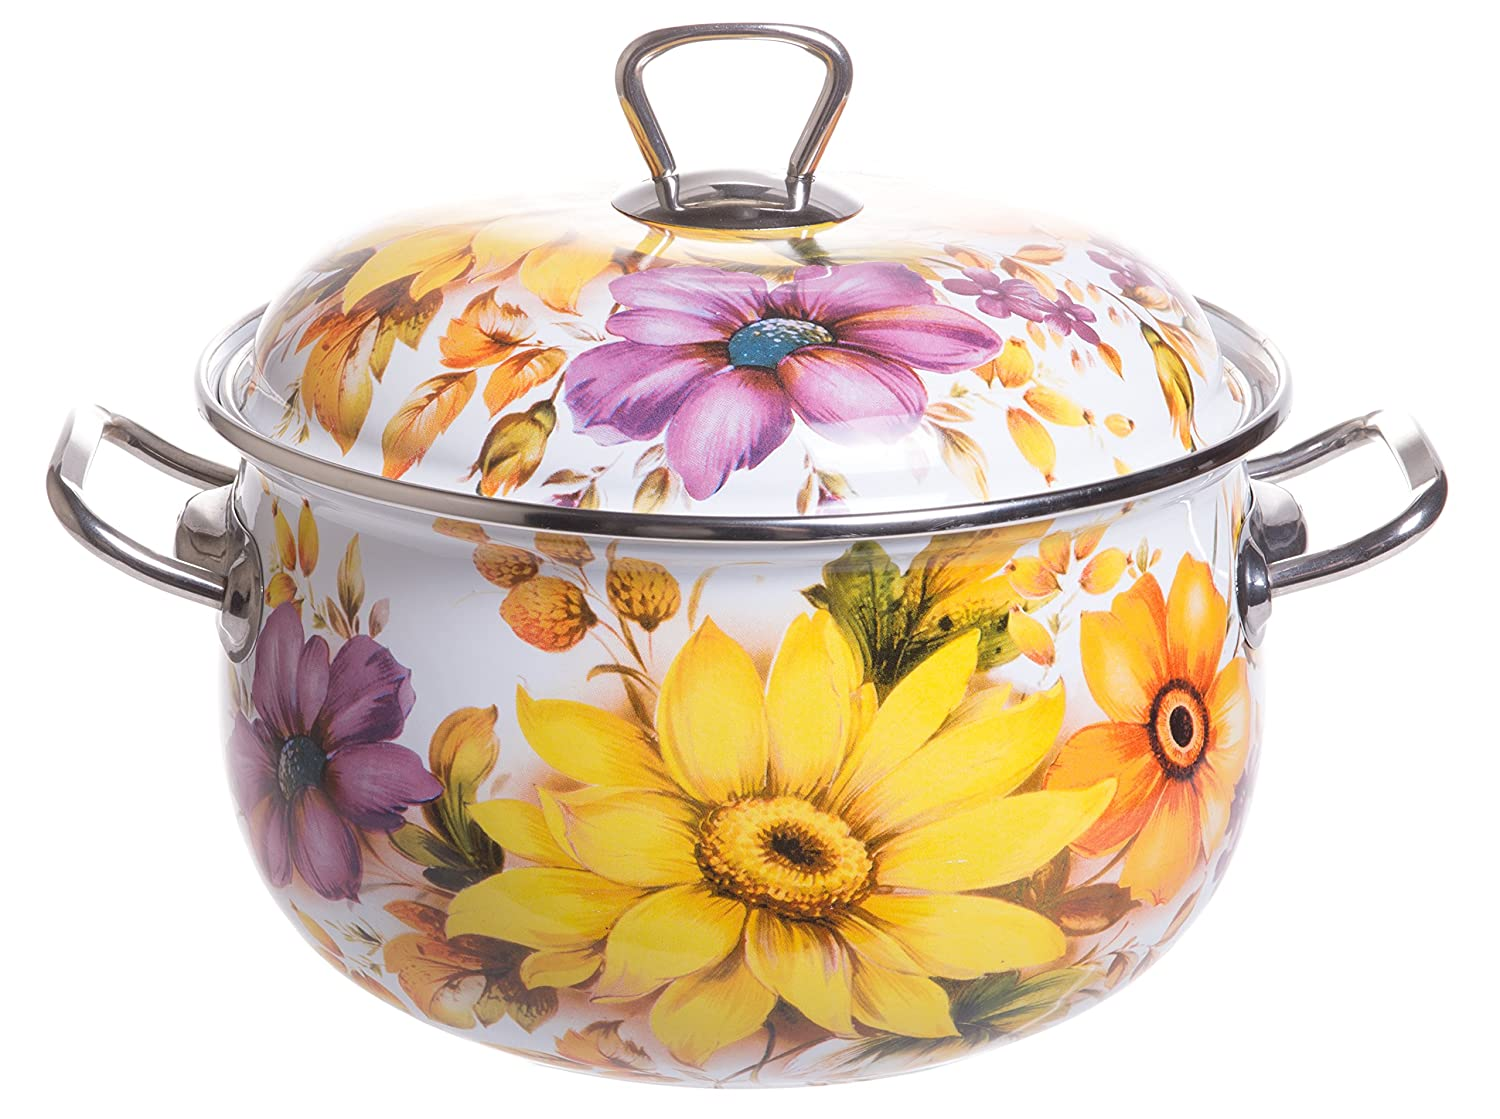 Red Co. Enamel On Steel Round Covered Stockpot, Pasta Stock Stew Soup Casserole Dish with Sunflower Lid, Up to 4 Quarts - 20 cm